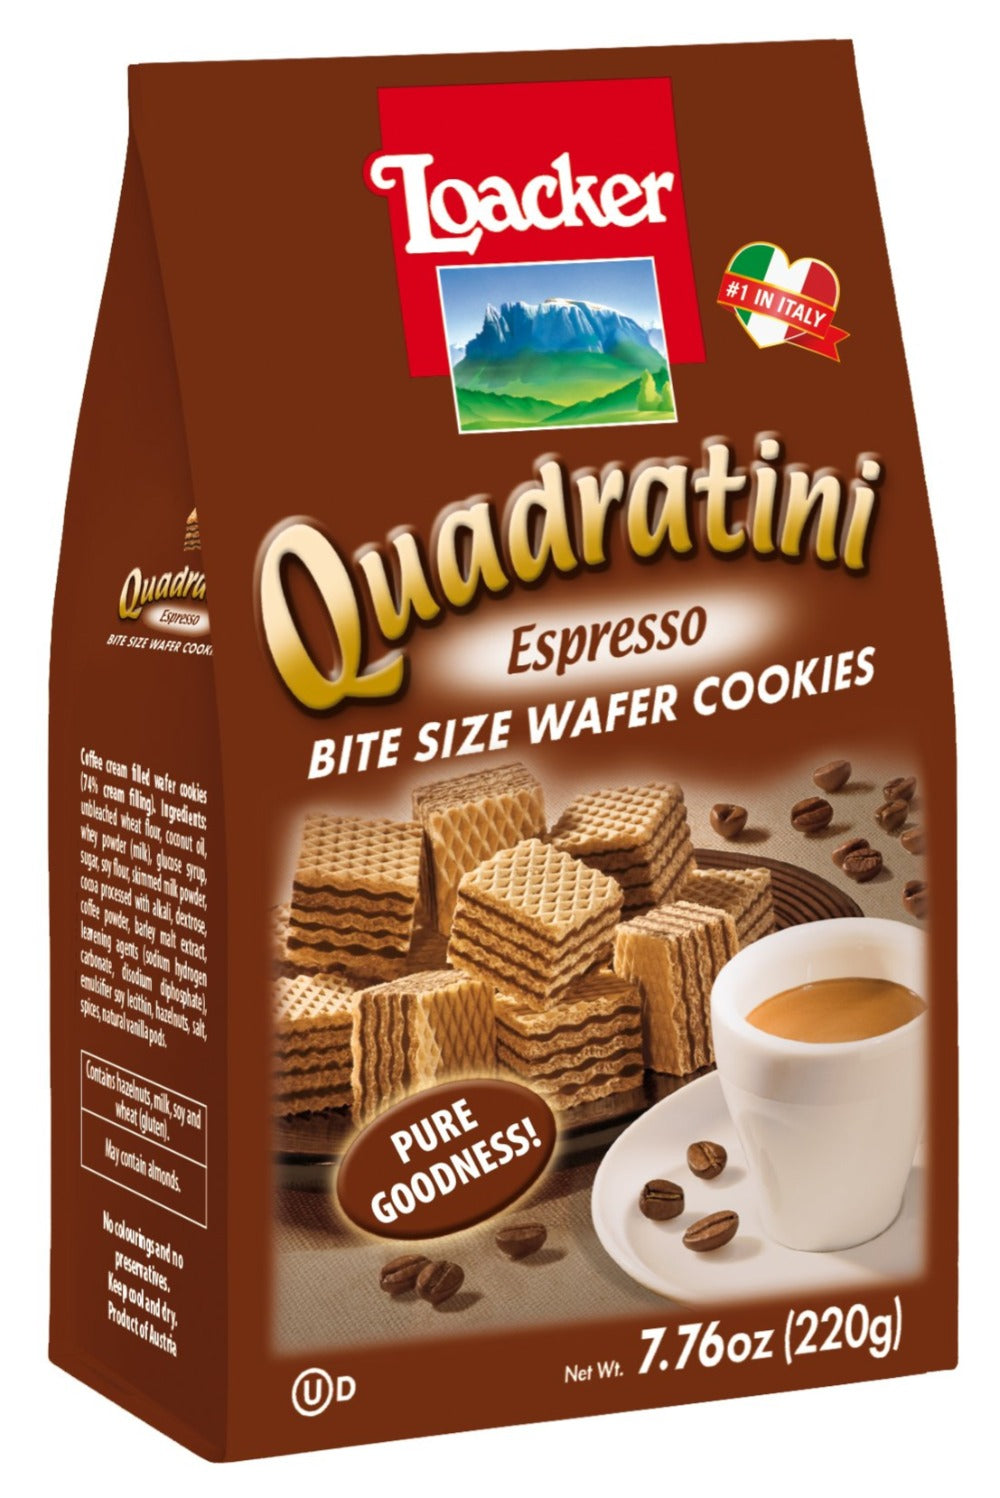 Loacker - Quadratini Espresso Wafer - 7.76 oz